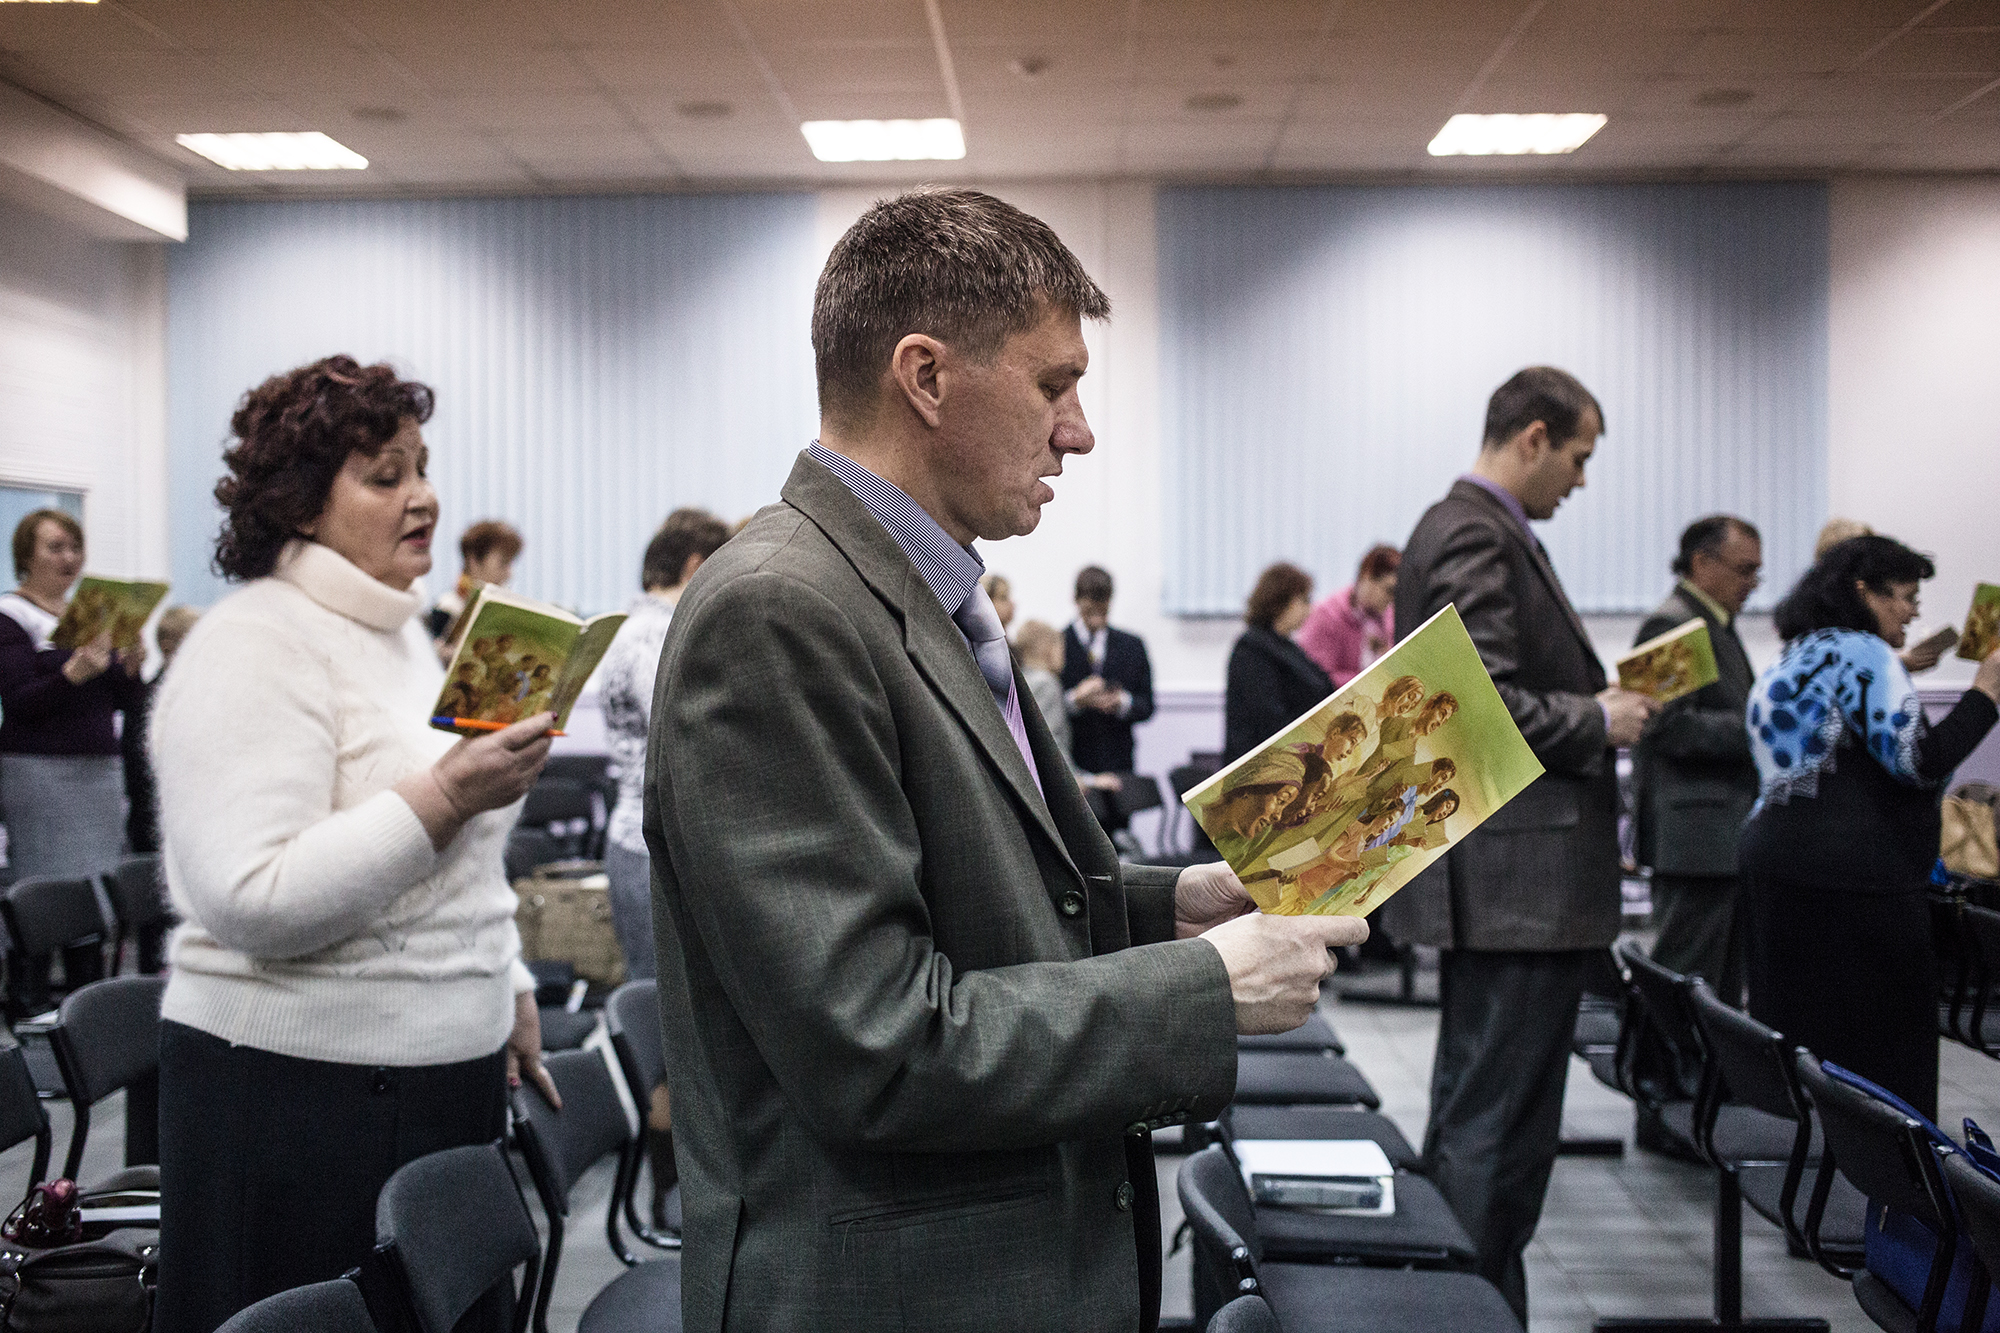 Jehovah's Witnesses sing songs at the beginning of the meeting in Rostov-on-Don in 2015.